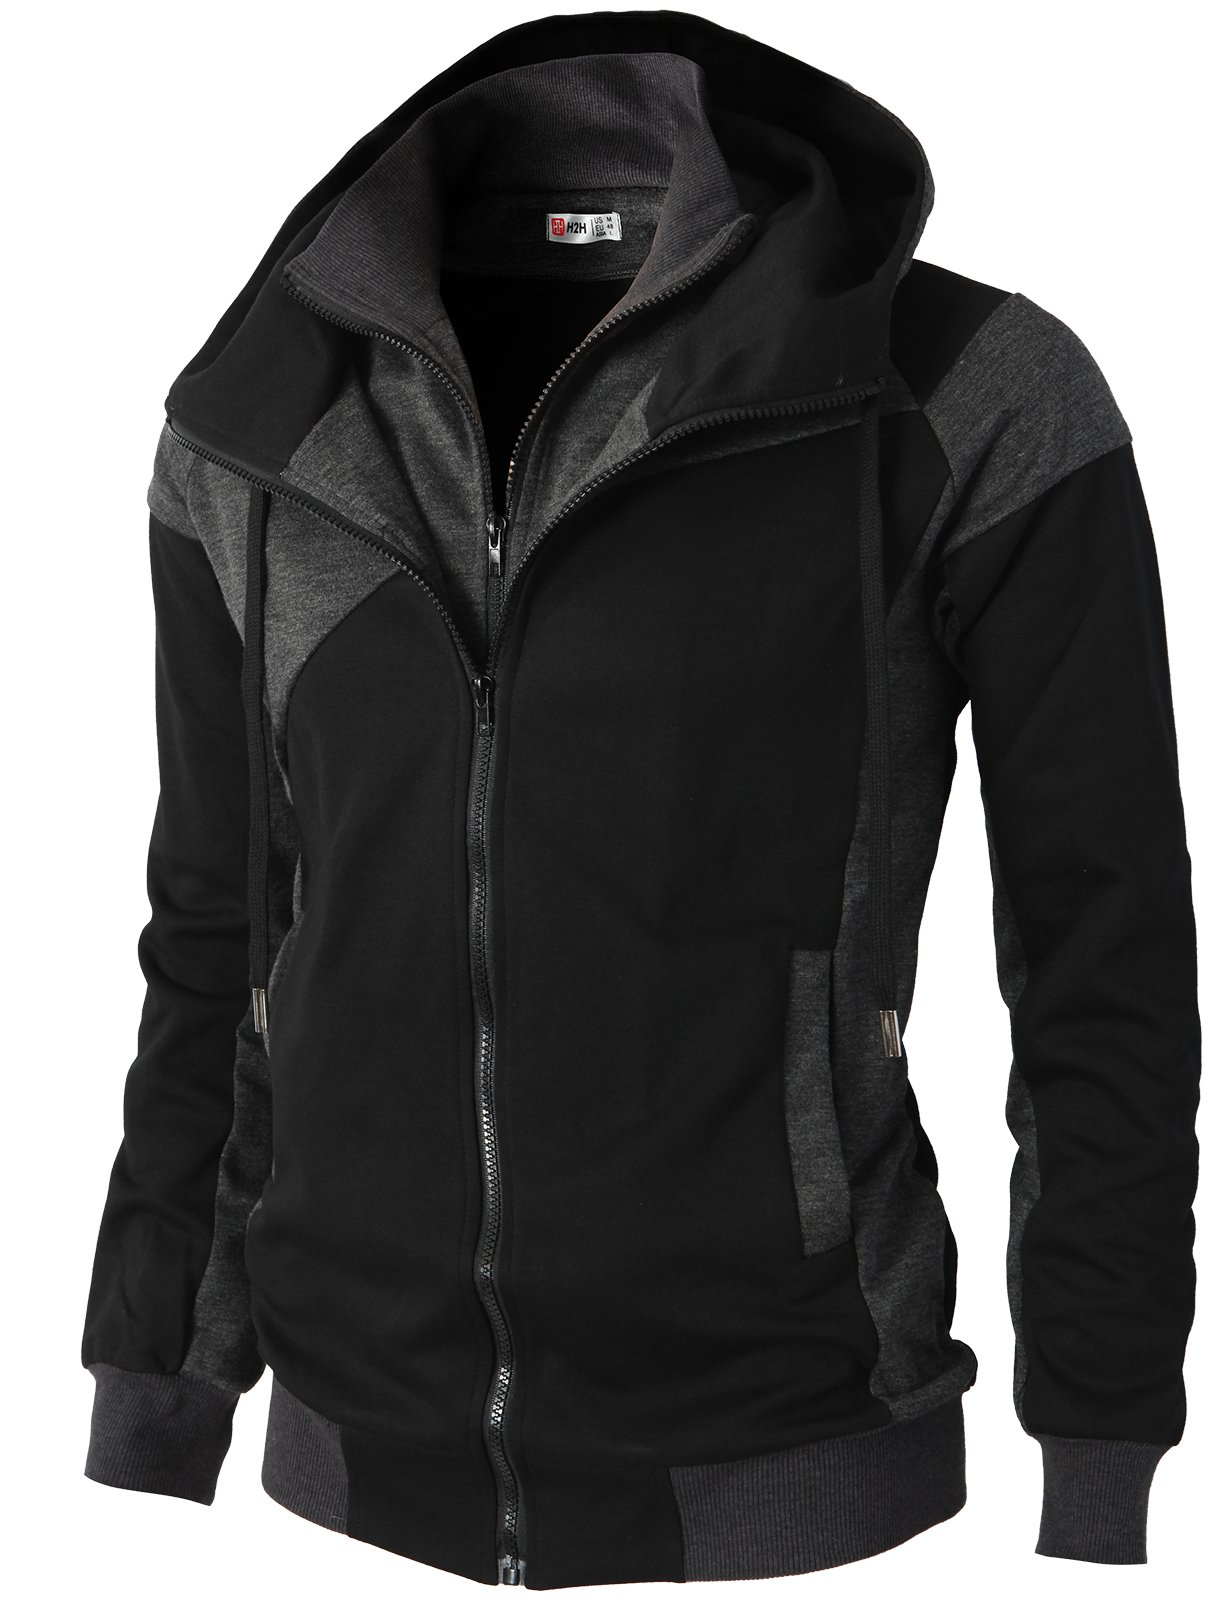 H2H Mens Hoodie Zip-Up Double Zipper Closer With Two Tone Color BLACK US XL/Asia XXL (KMOHOL076)